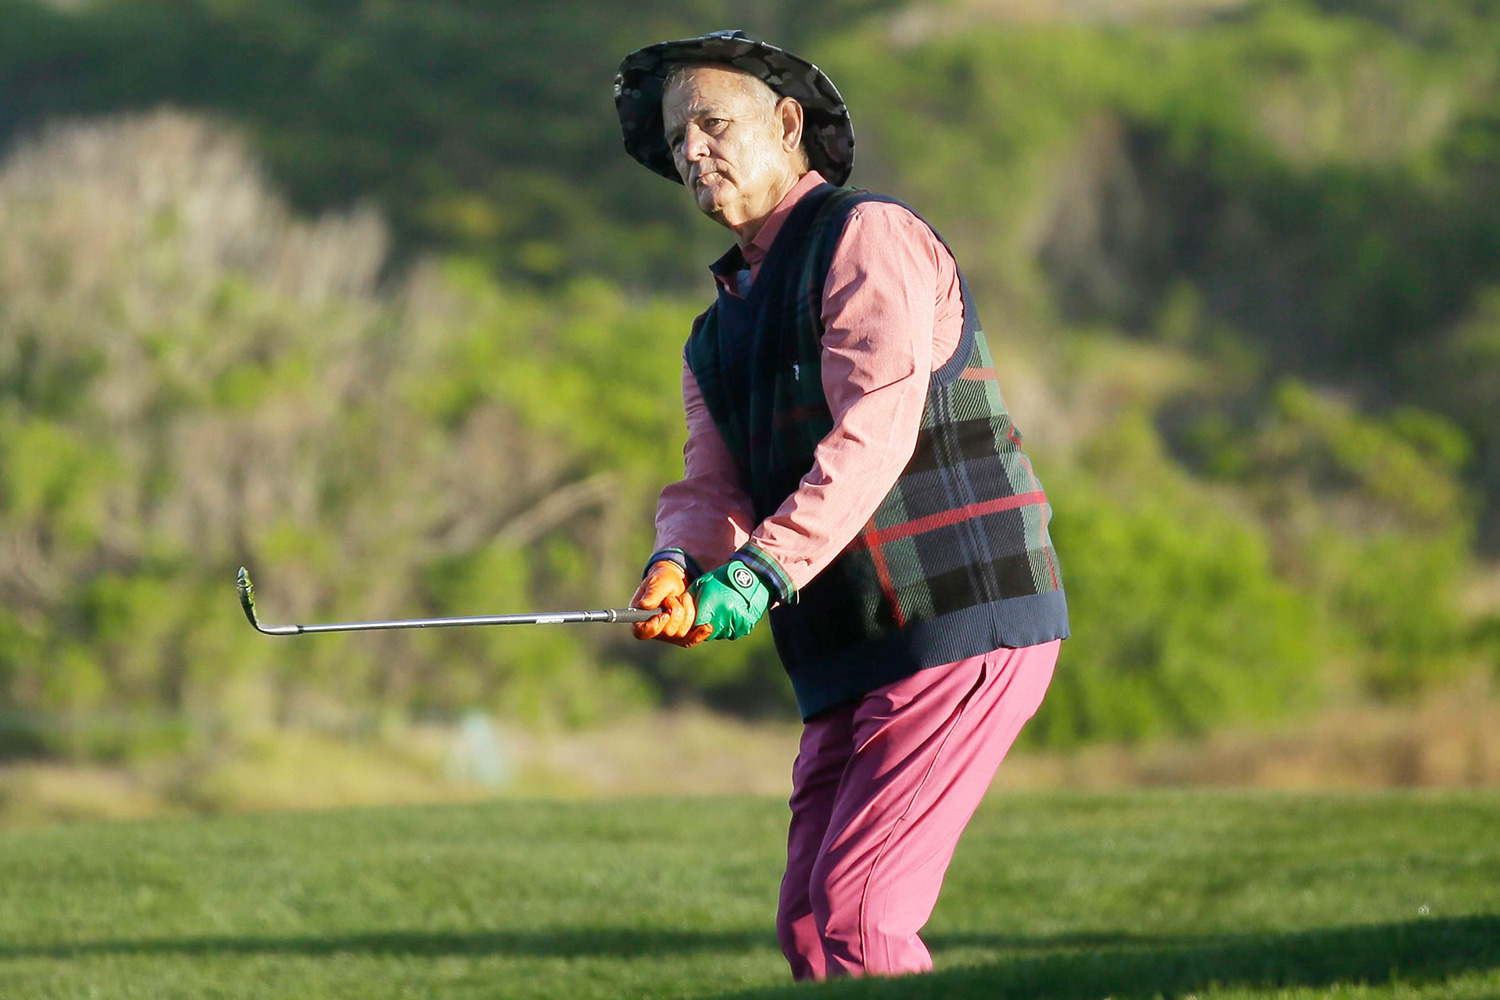 Bill Murray follows his chip shot to the 10th green of the Monterey Peninsula Country Club Shore Course during the second round of the AT&T Pebble Beach National Pro-Am golf tournament, in Pebble Beach, Calif Golf, Pebble Beach, USA - 07 Feb 2020